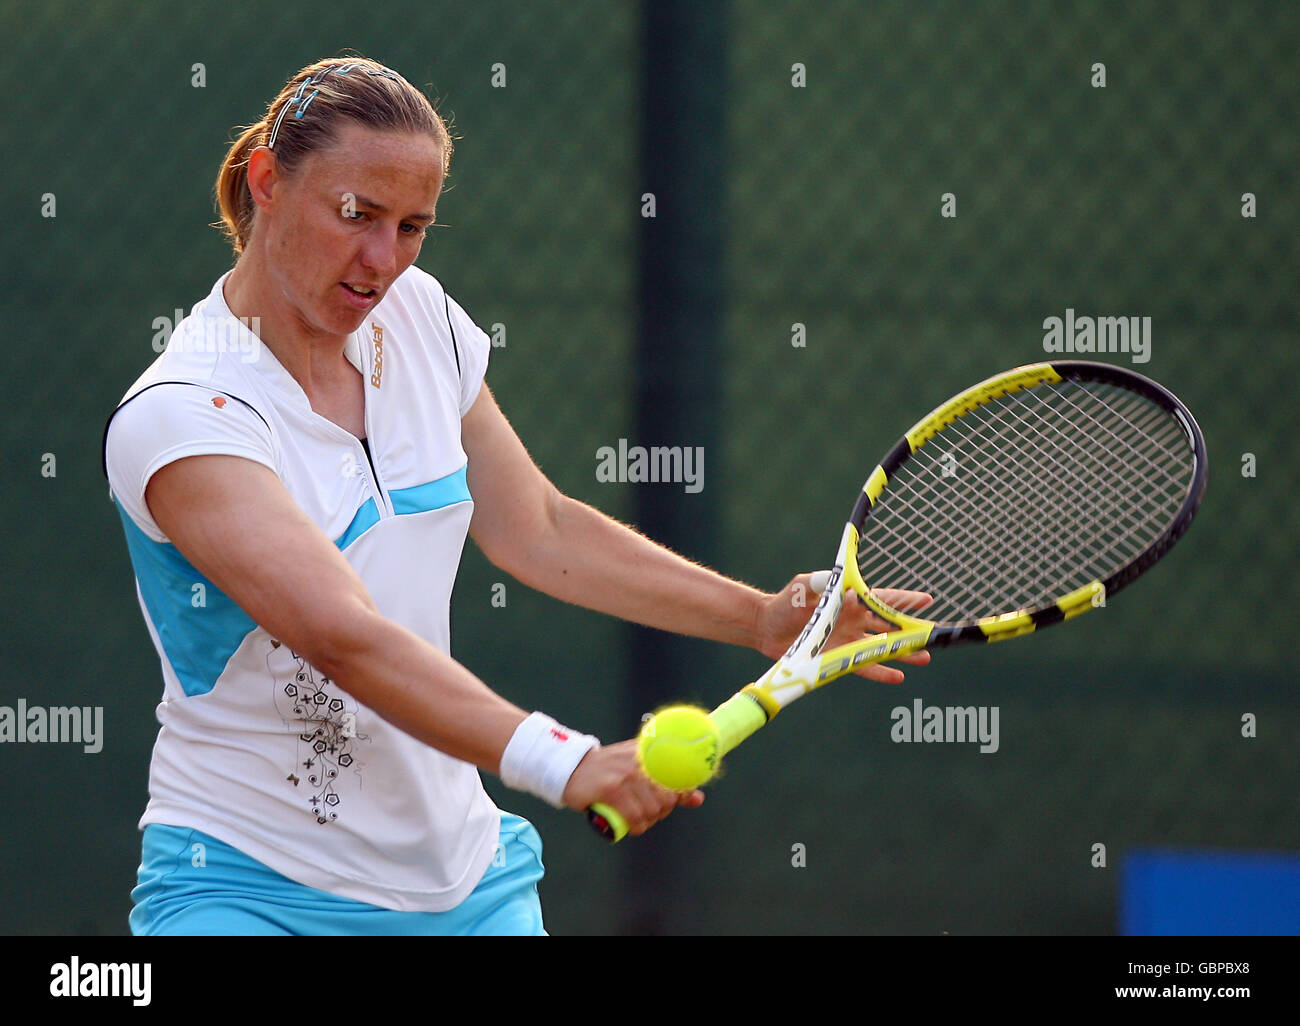 Tennis - The AEGON Trophy 2009 - Day Three - Nottingham Tennis Centre - Stock Image